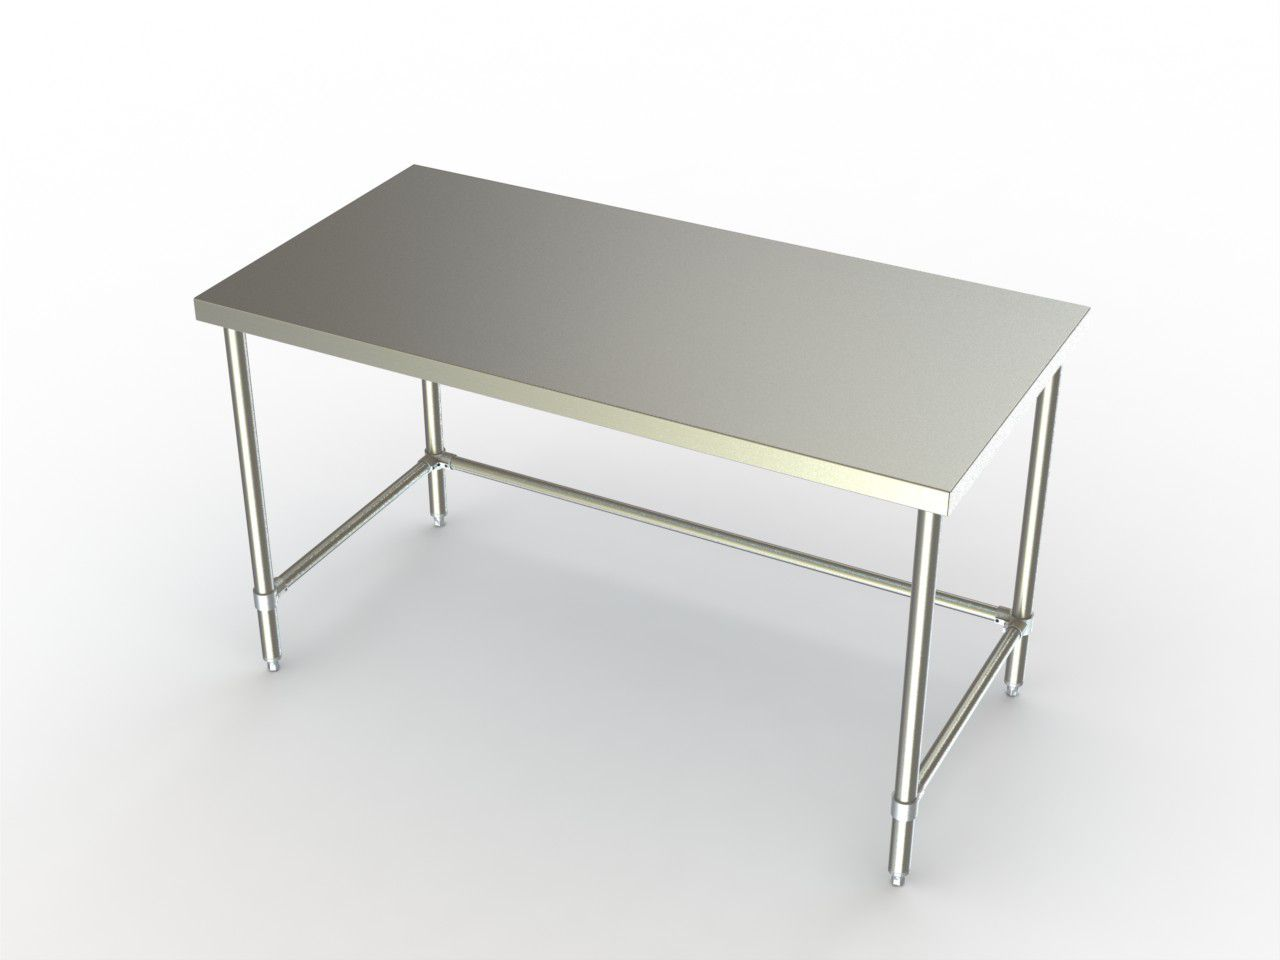 Multiple Drawer Stainless Steel Utility Tables with Guard Rail